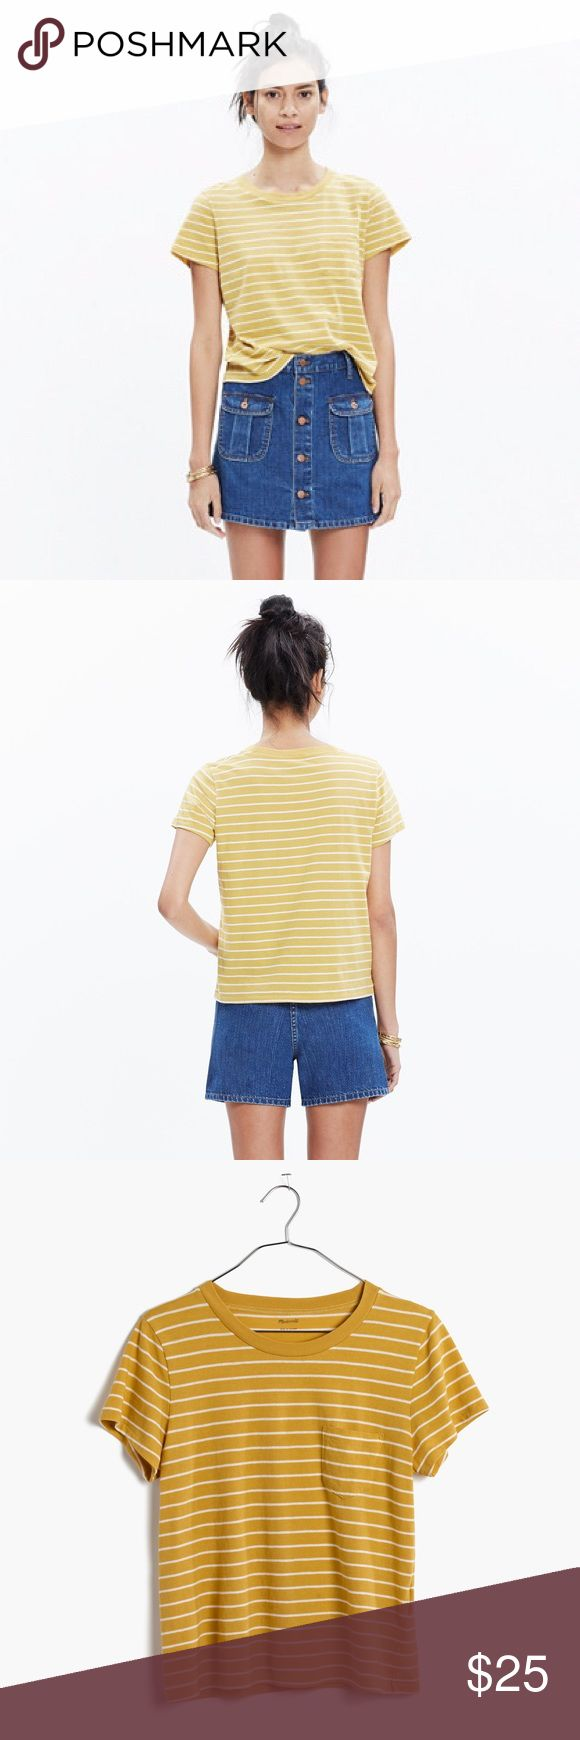 Madewell Radio Tee in Largo Stripe New with tags. Madewell Tops Tees - Short Sleeve